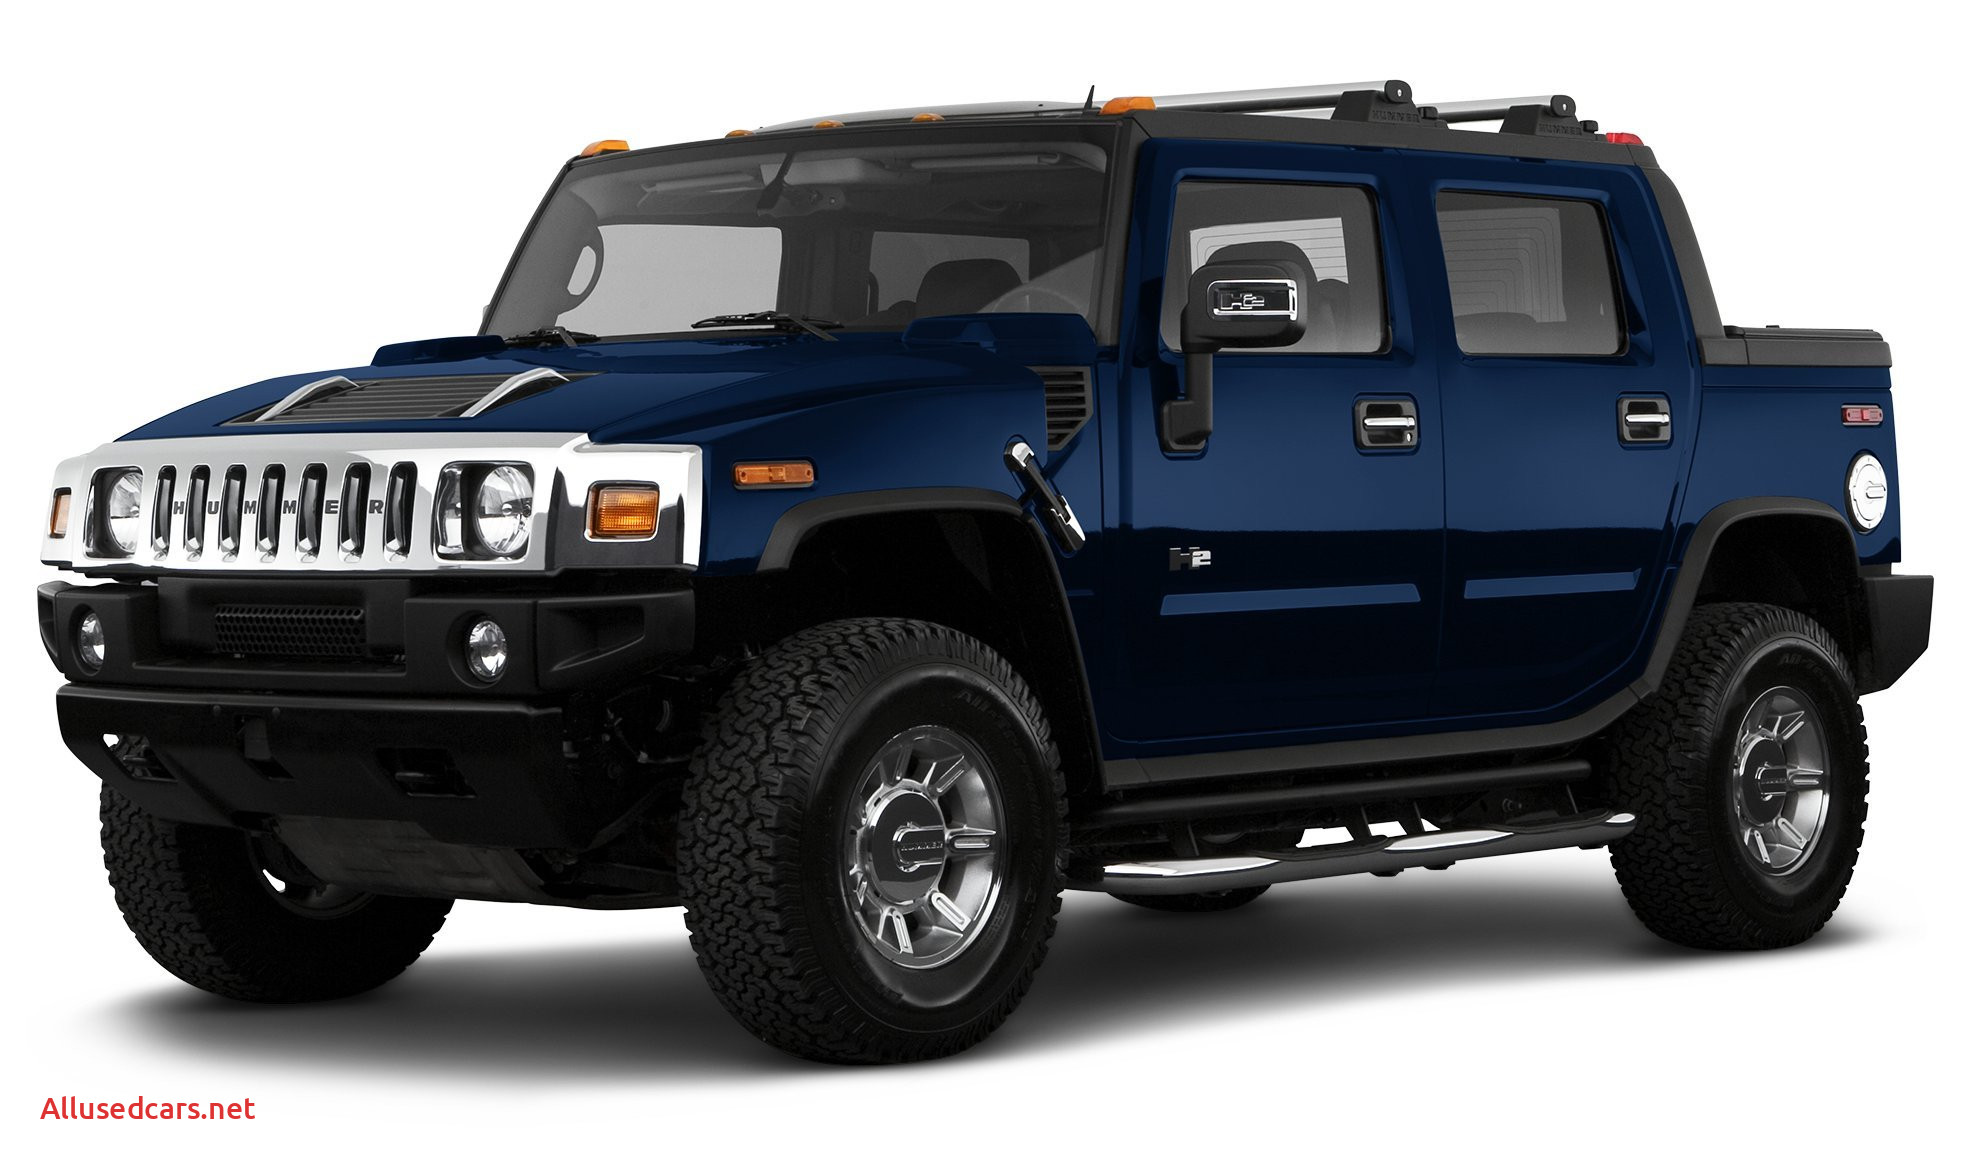 2006 Hummer H2 Suv Luxury New Amazon 2007 Hummer H2 Reviews and Specs Vehicles